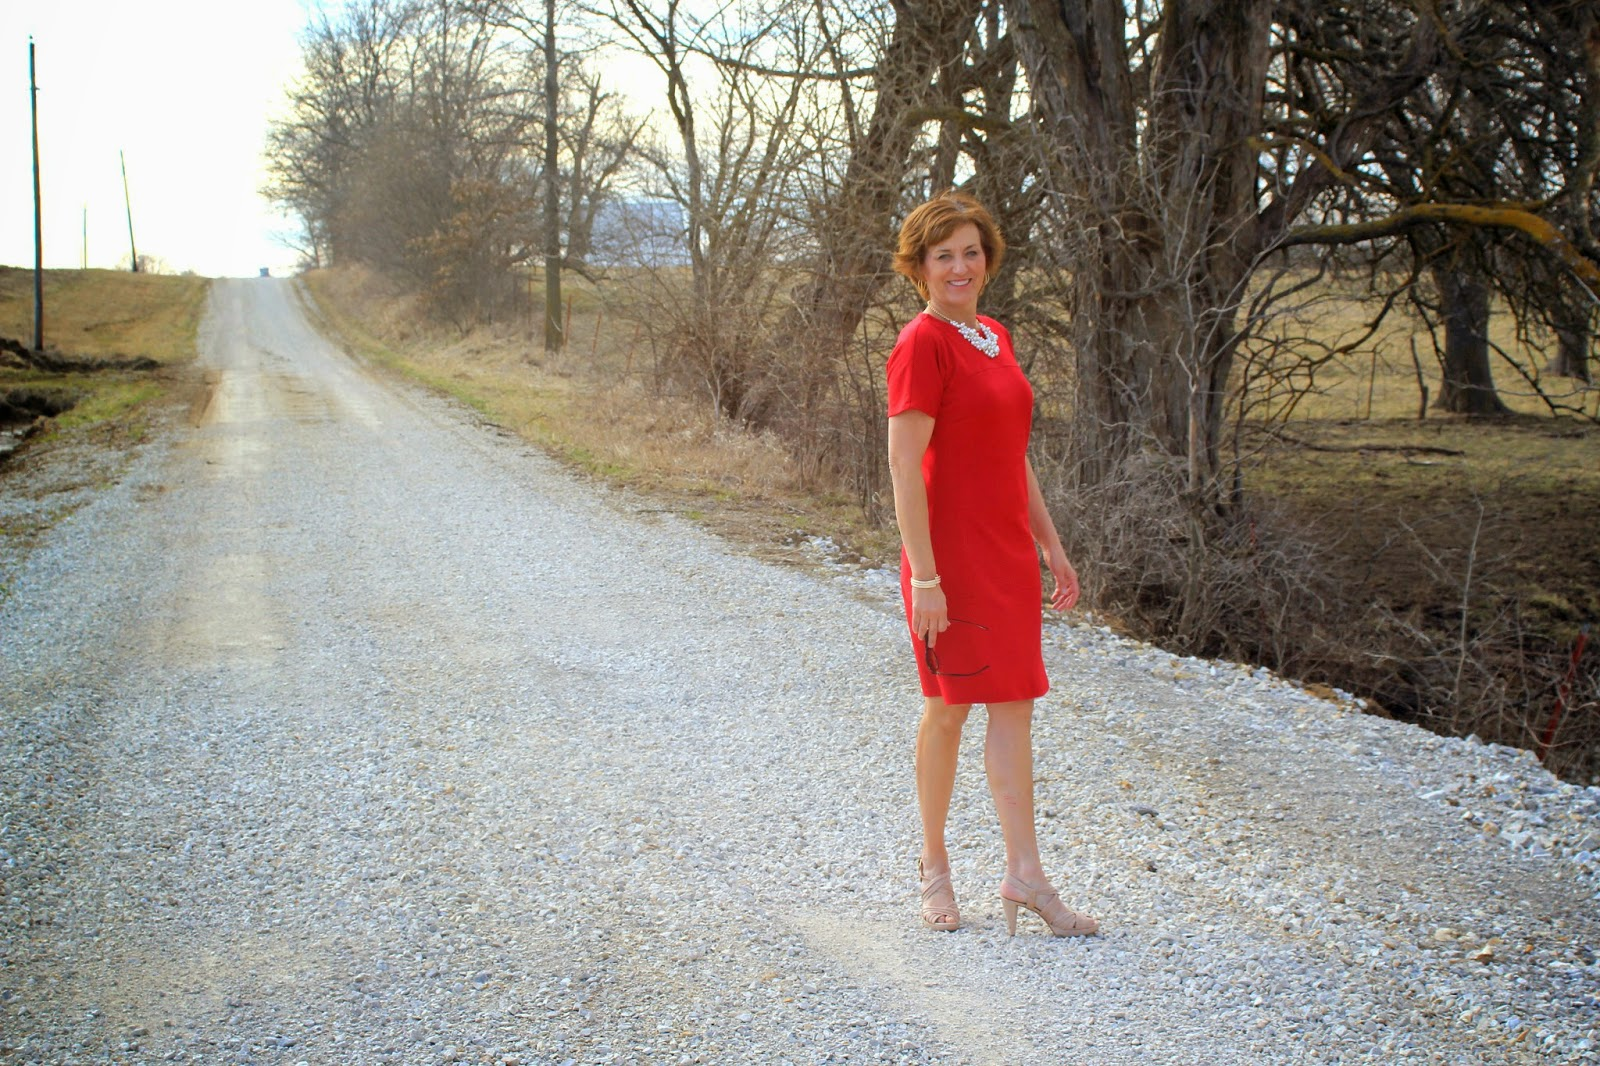 Vogue 8805 in red ponte for a fun summer dress which is down a country gravel lane